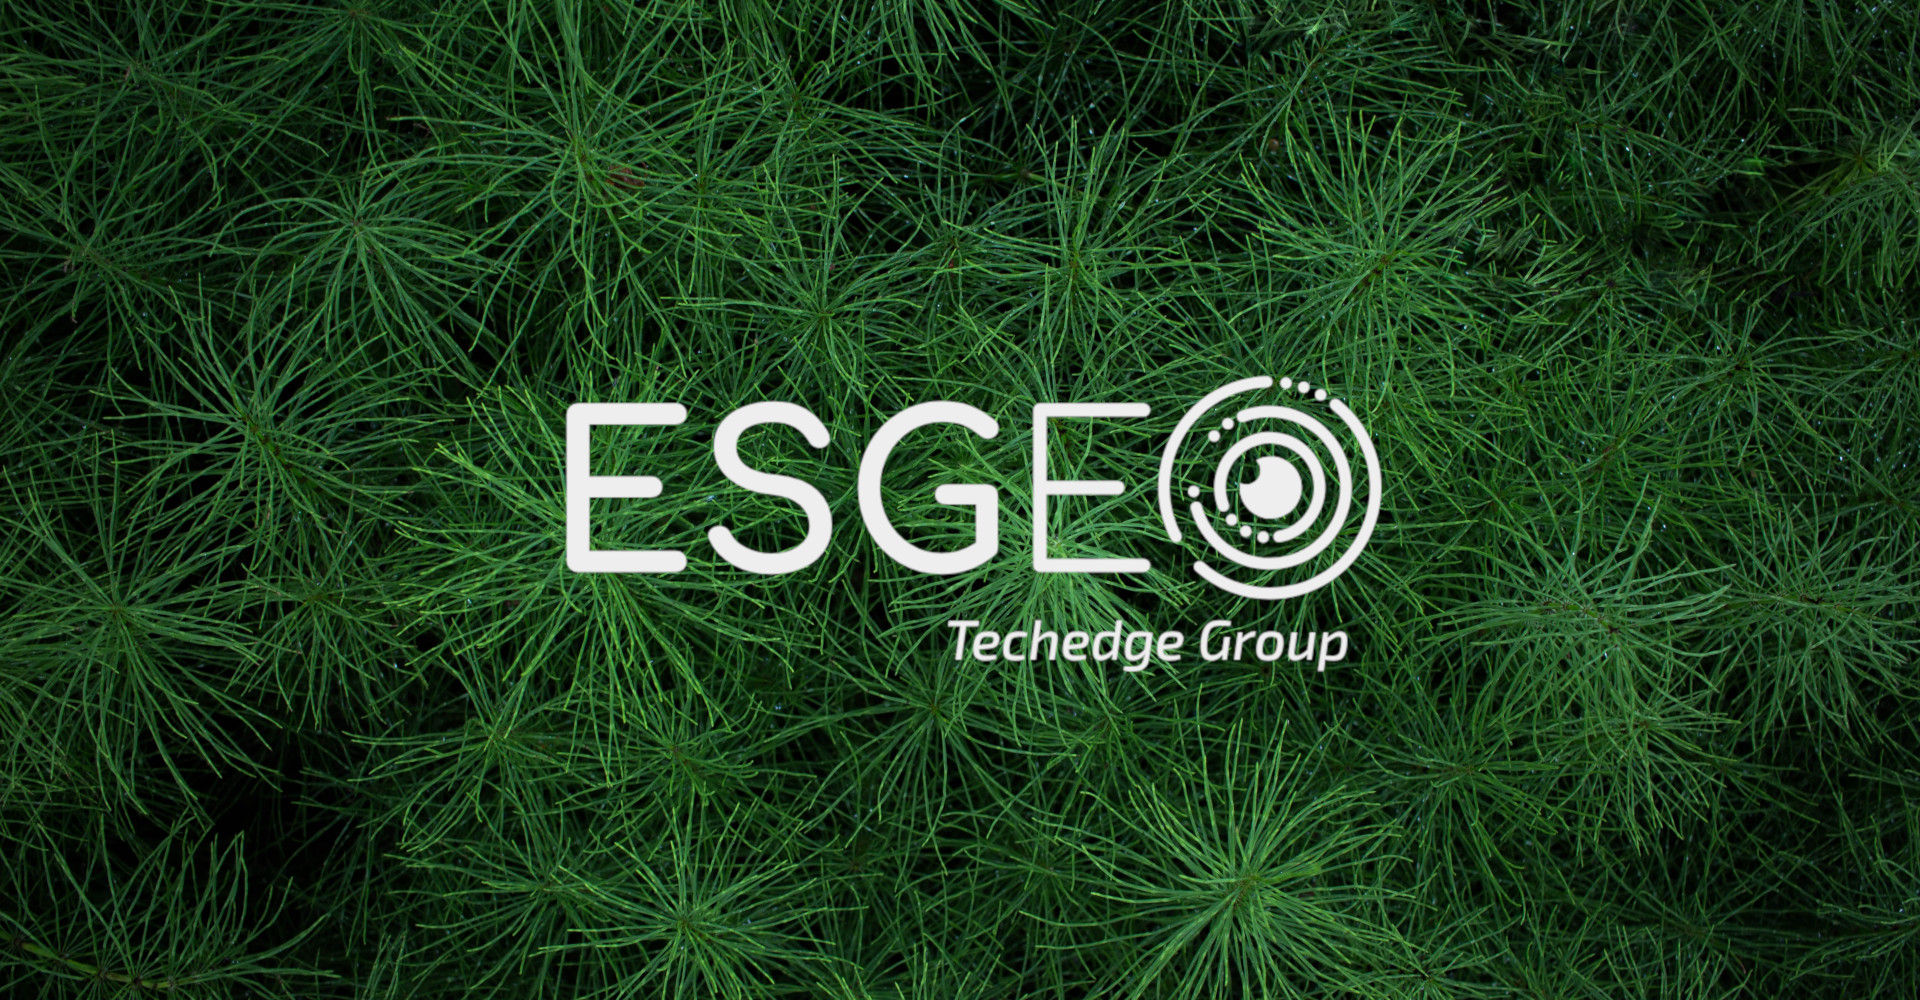 Techedge accoglie ESGeo, la Piattaforma di Intelligenza Sostenibile